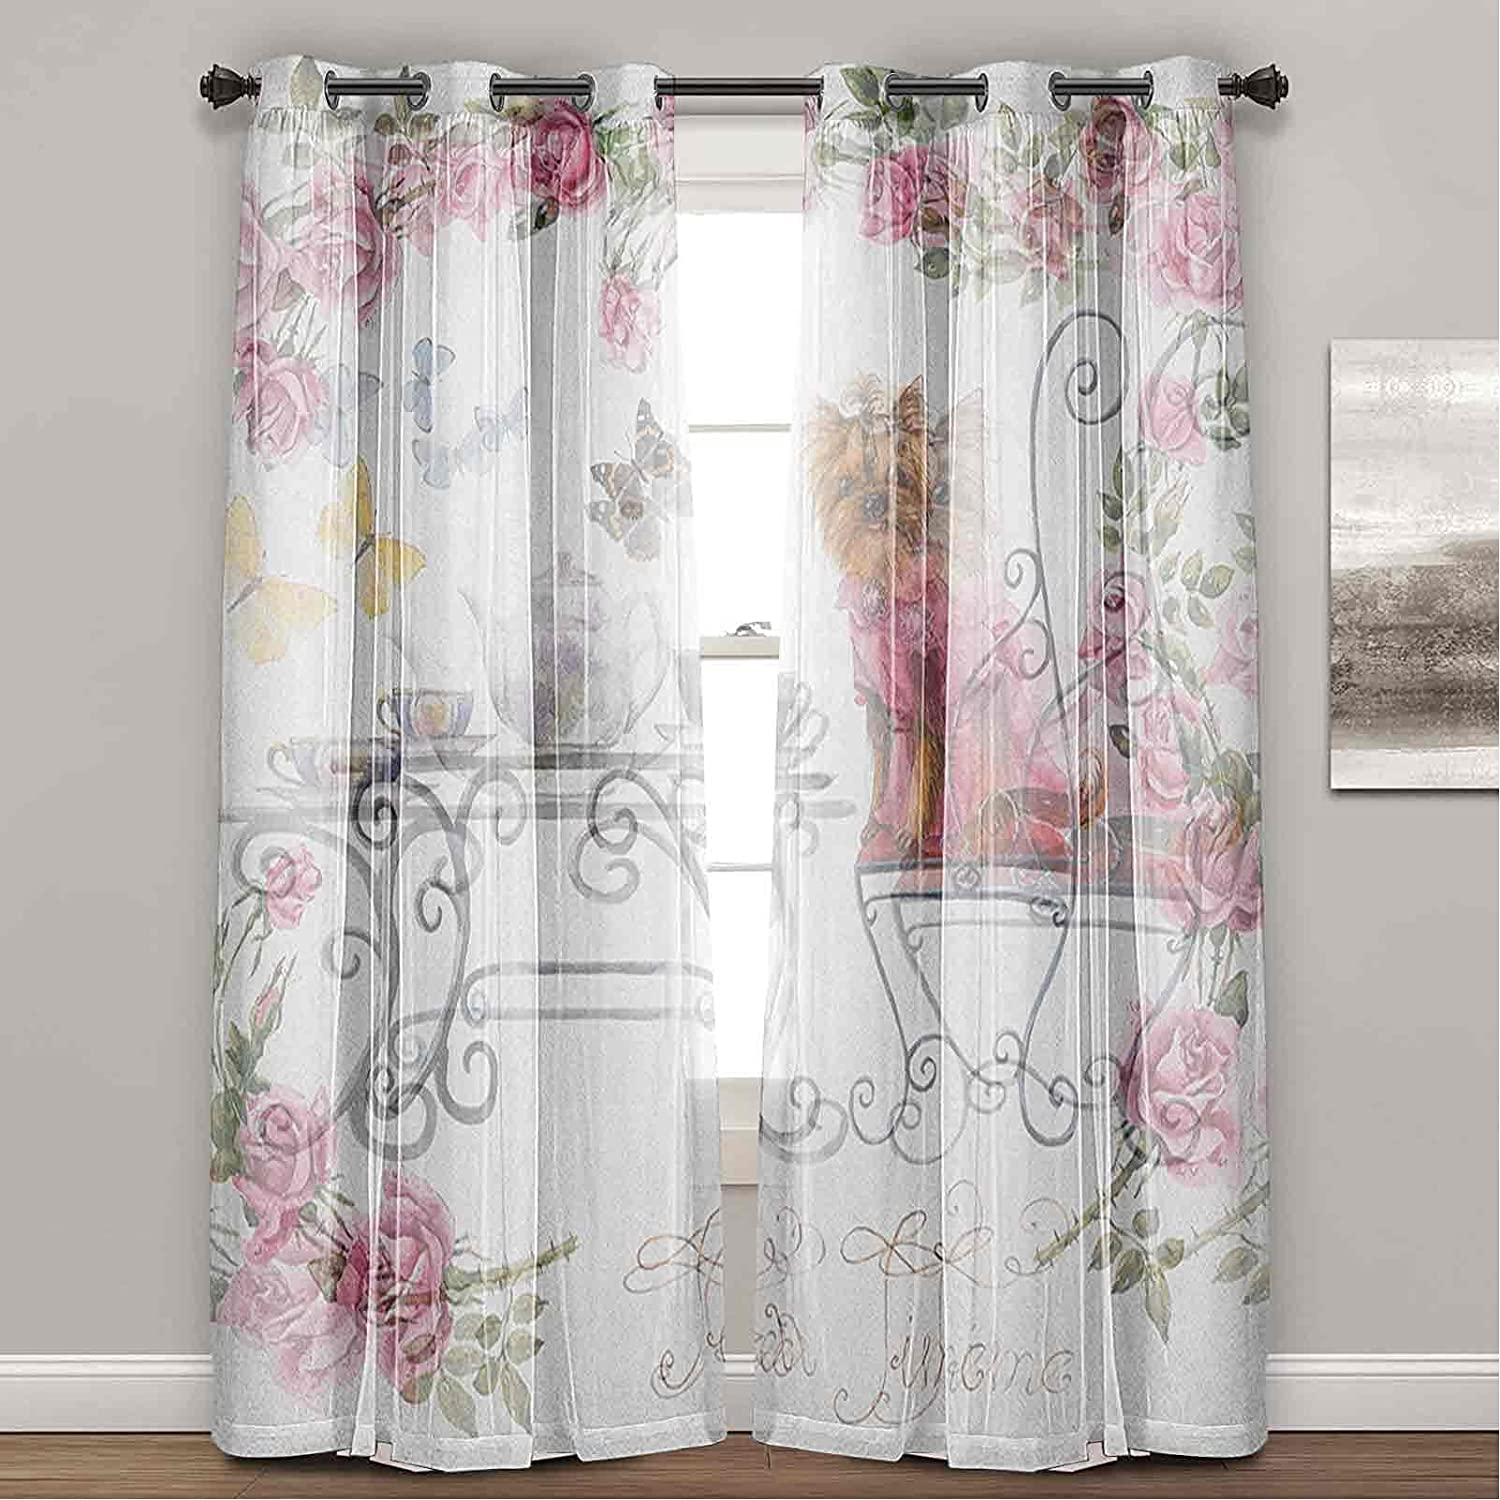 Yorkie Now on sale White Gauze Blackout Drapes Terrie Max 83% OFF Assembled Yorkshire